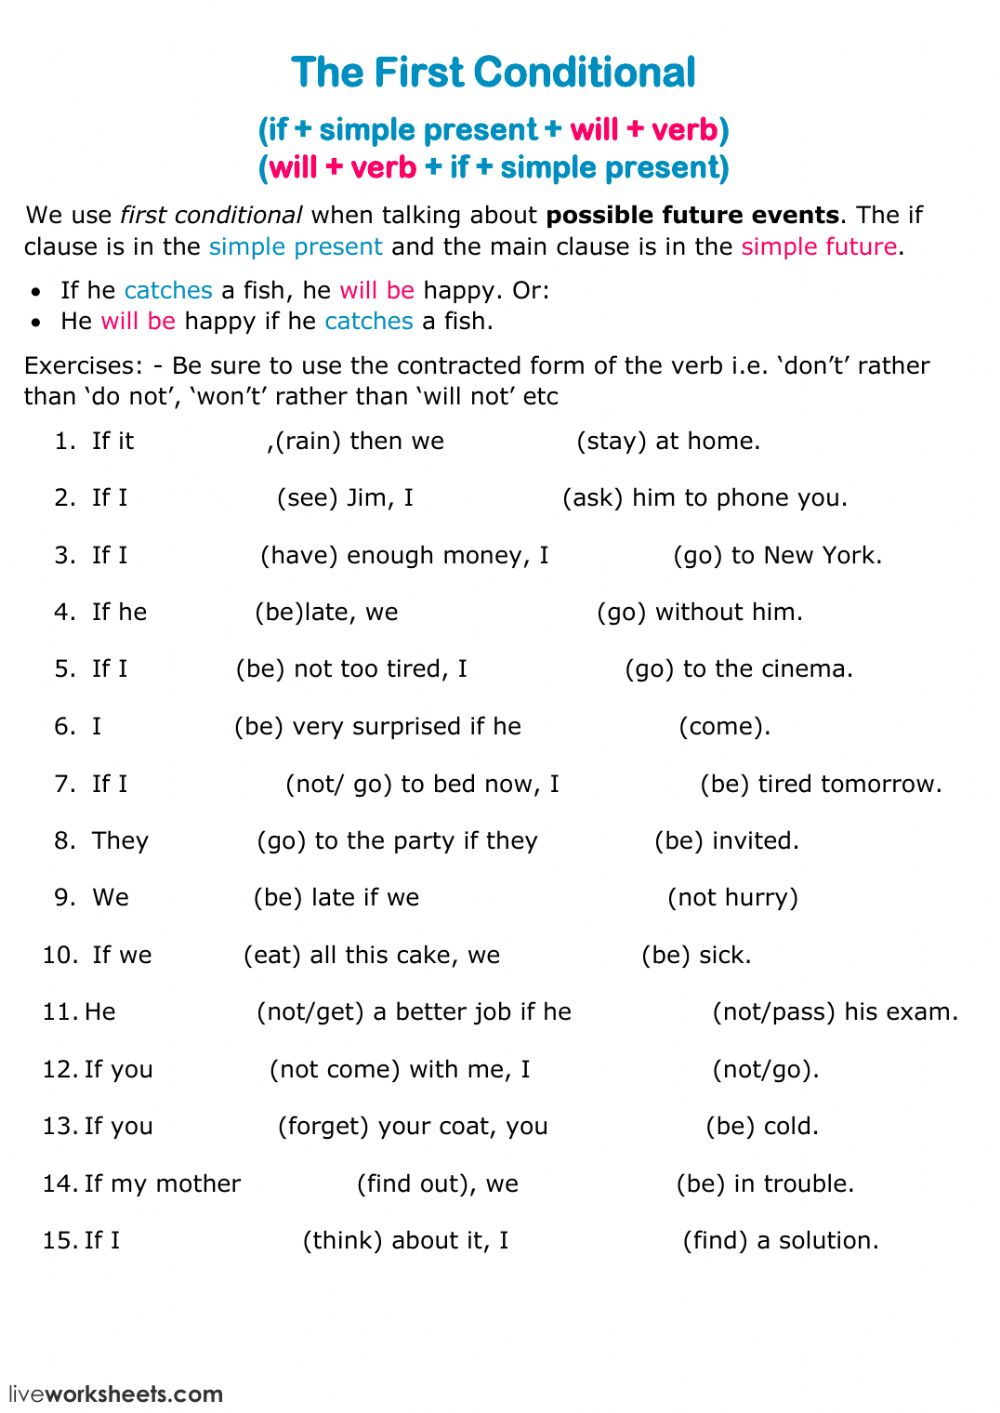 - The First Conditional - Interactive Worksheet